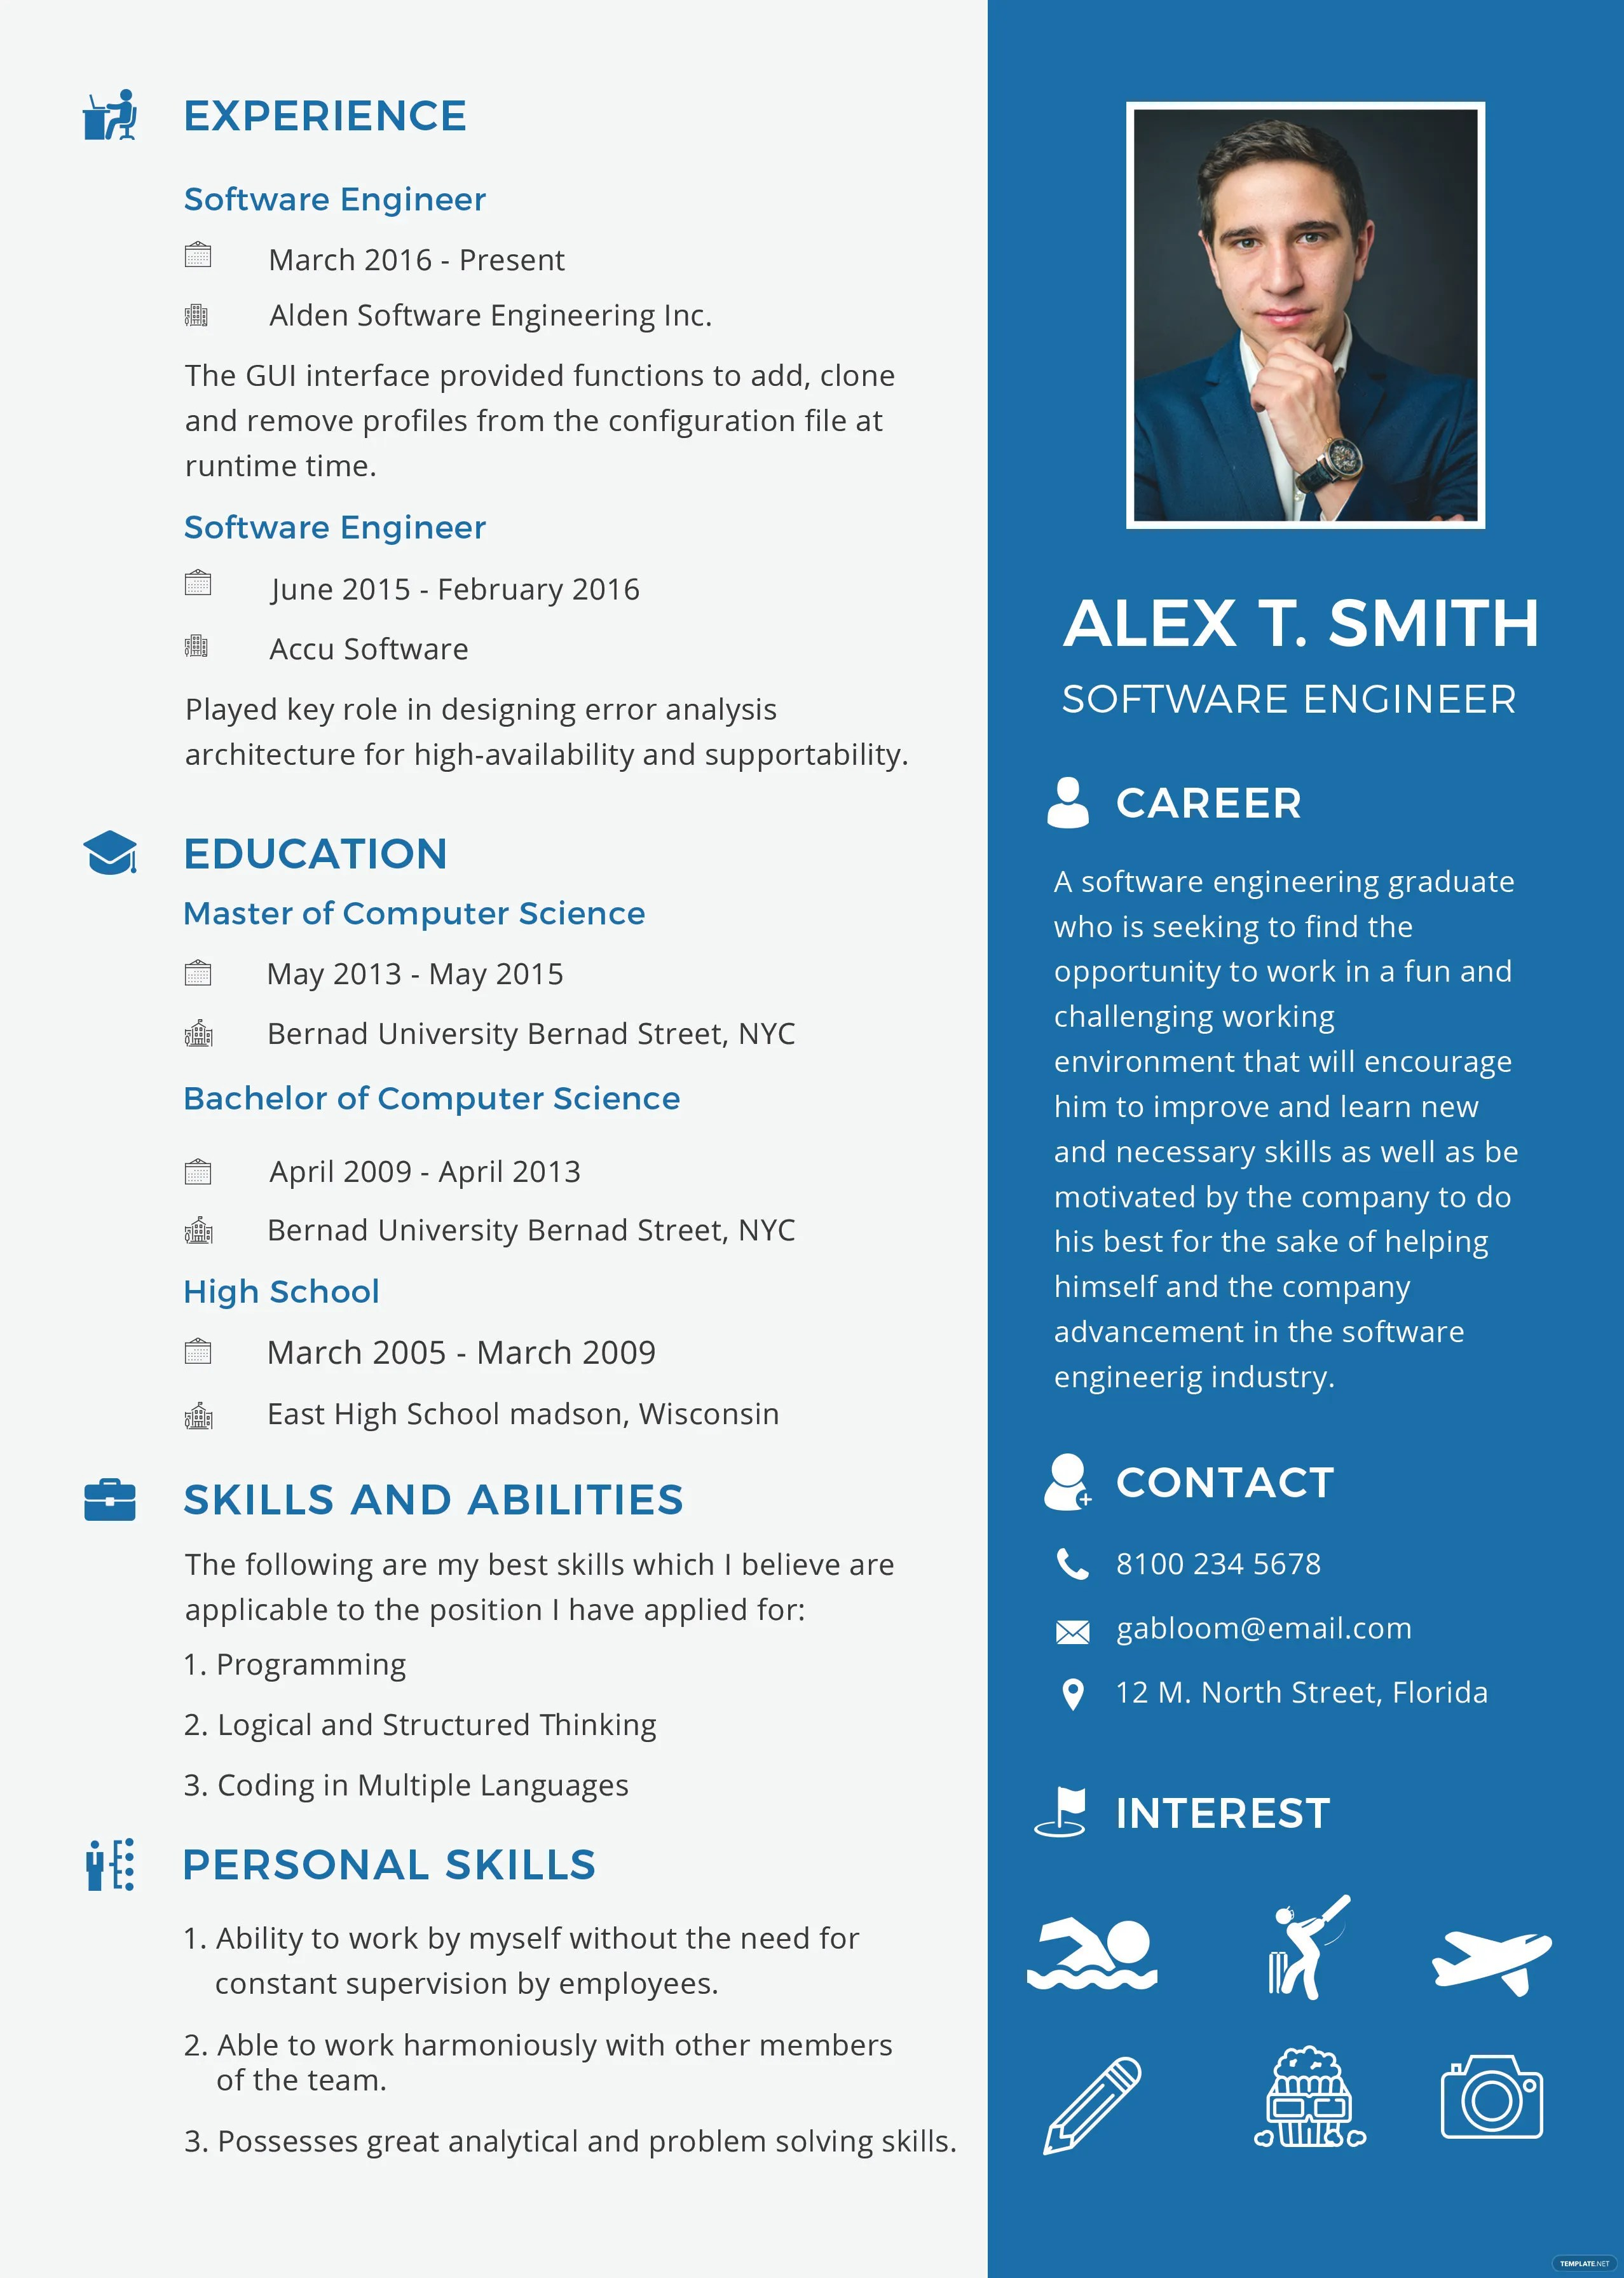 Free Resume and CV for Software Engineer Fresher Template